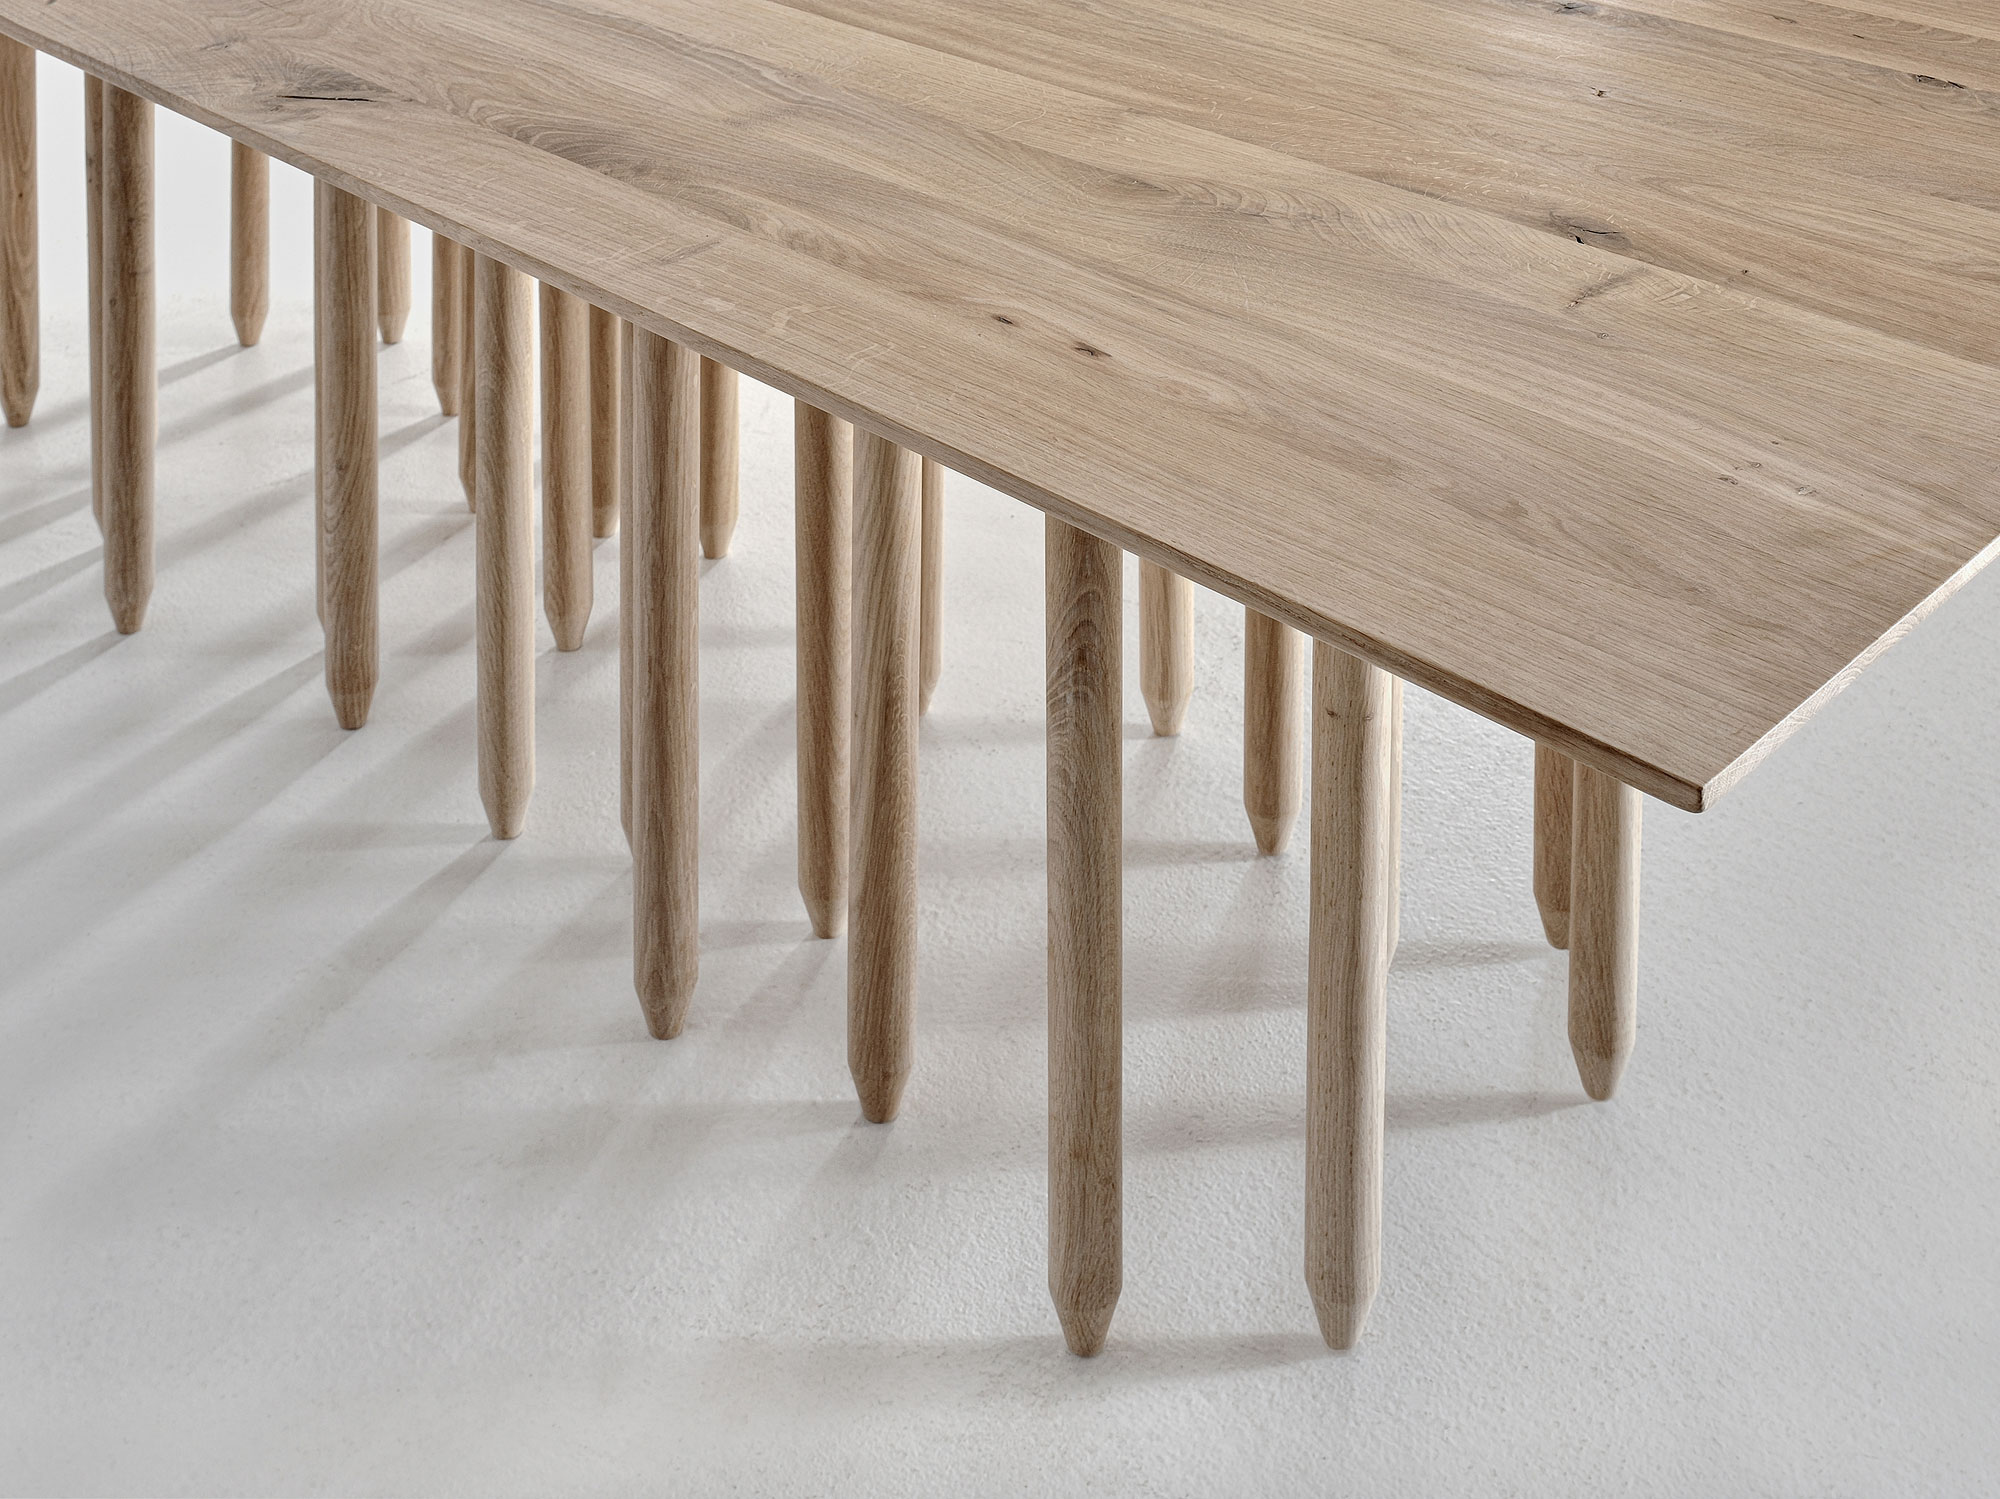 Designer Solid Wood Table STILUS 0293 custom made in solid wood by vitamin design